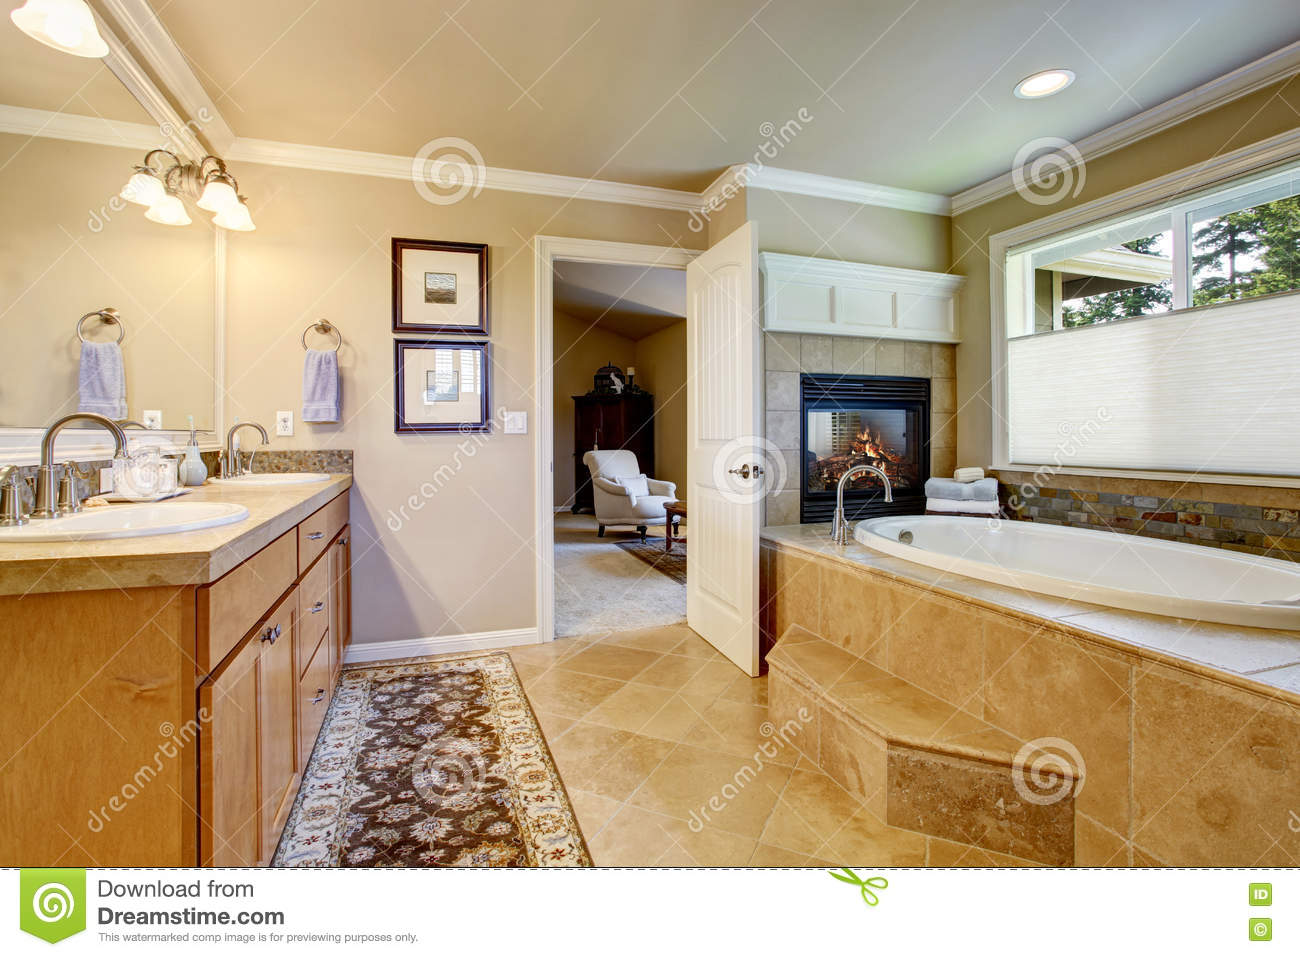 Classic American Bathroom With Wooden Cabinets, Two White Sinks ...